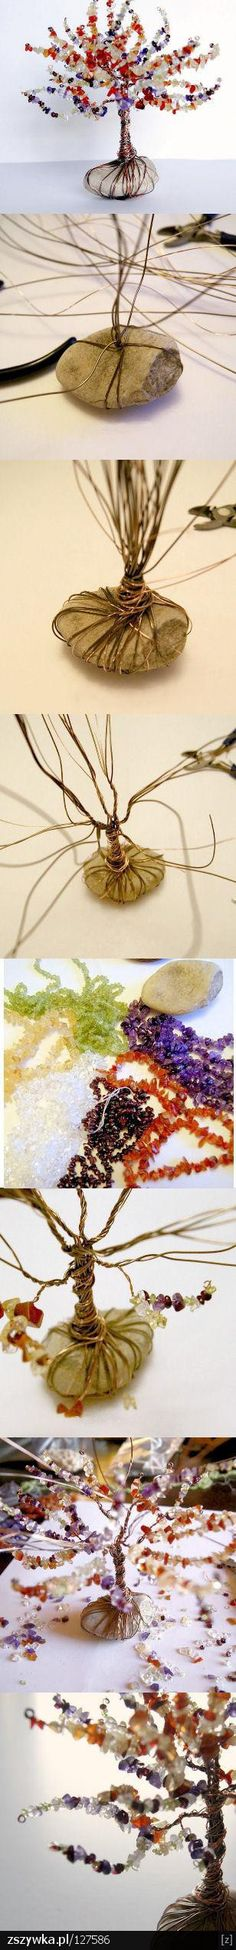 "DIY beads: DIY beads and wire tree ~ wrap a big ""stone"" with ""wire"" and add … - Art Decoration Wire Crafts, Crafts To Do, Arts And Crafts, Easy Crafts, Diy Jewelry, Jewelry Making, Jewelry Tree, Jewelry Holder, Jewellery Box"